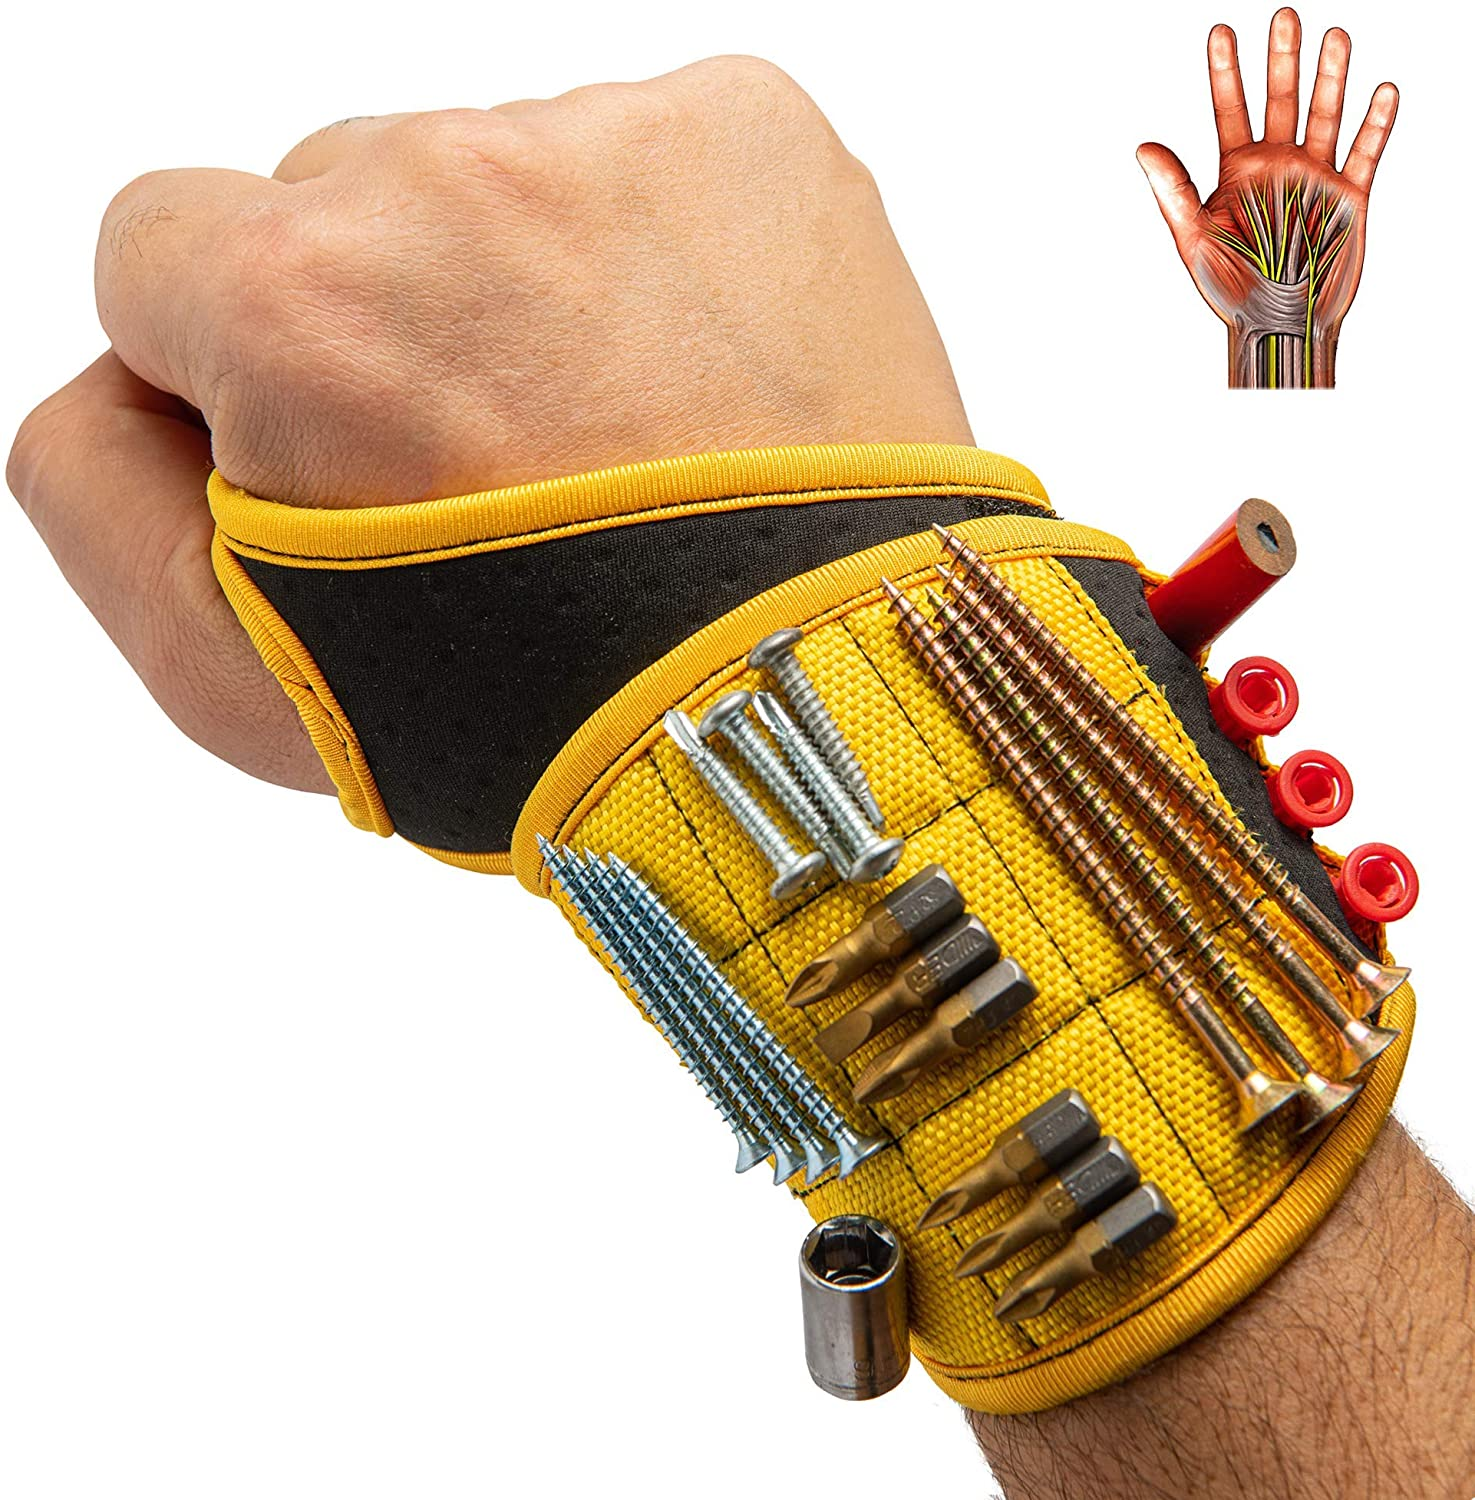 gifts-for-dad-from-daughter-wrist-support-and-magnetic-holder